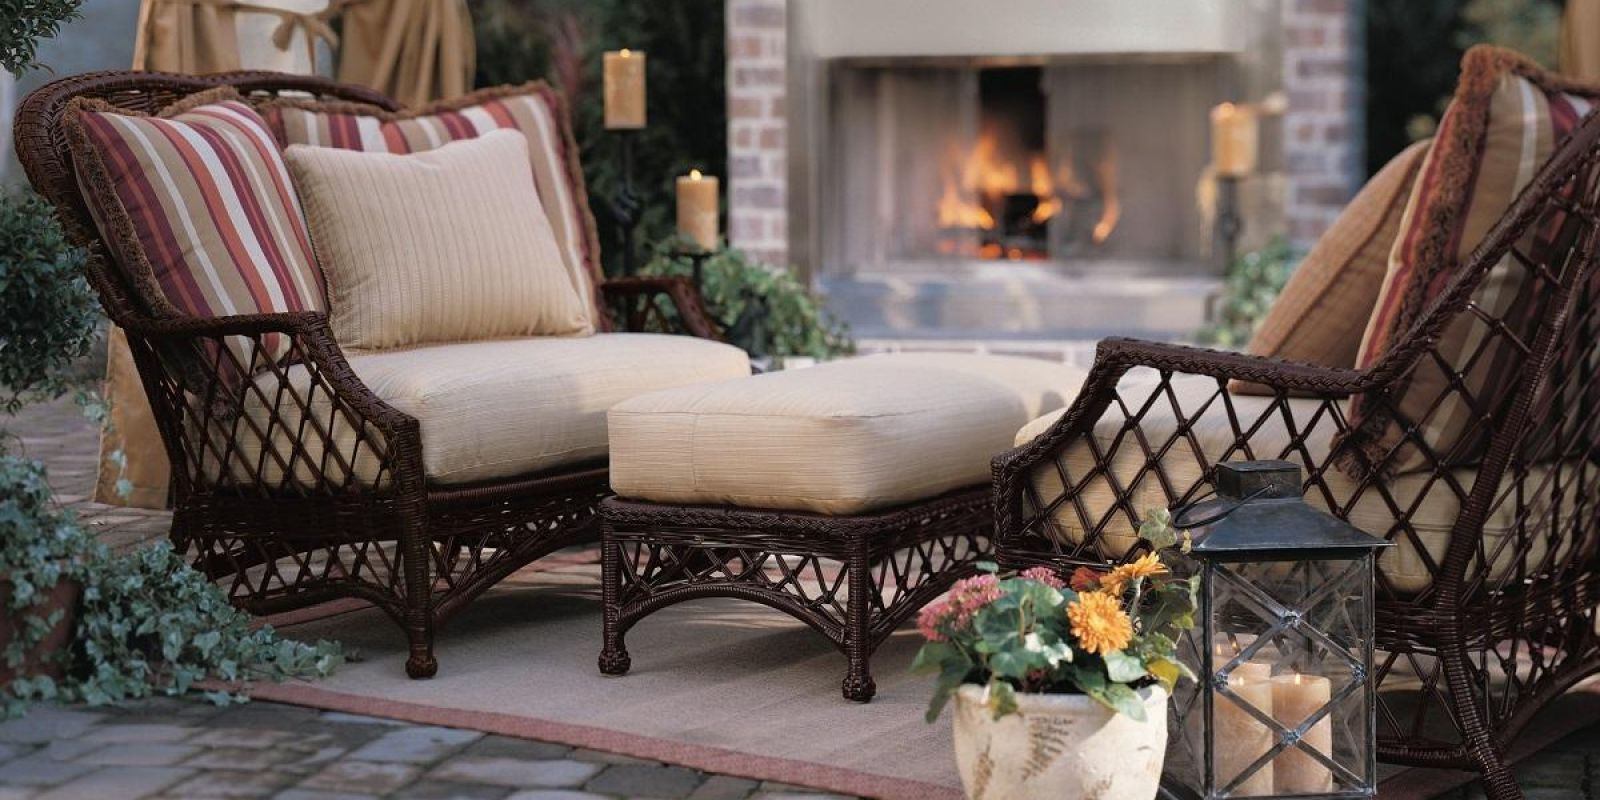 Outdoor Furniture | American Casual Living on Porch & Patio Casual Living id=89498